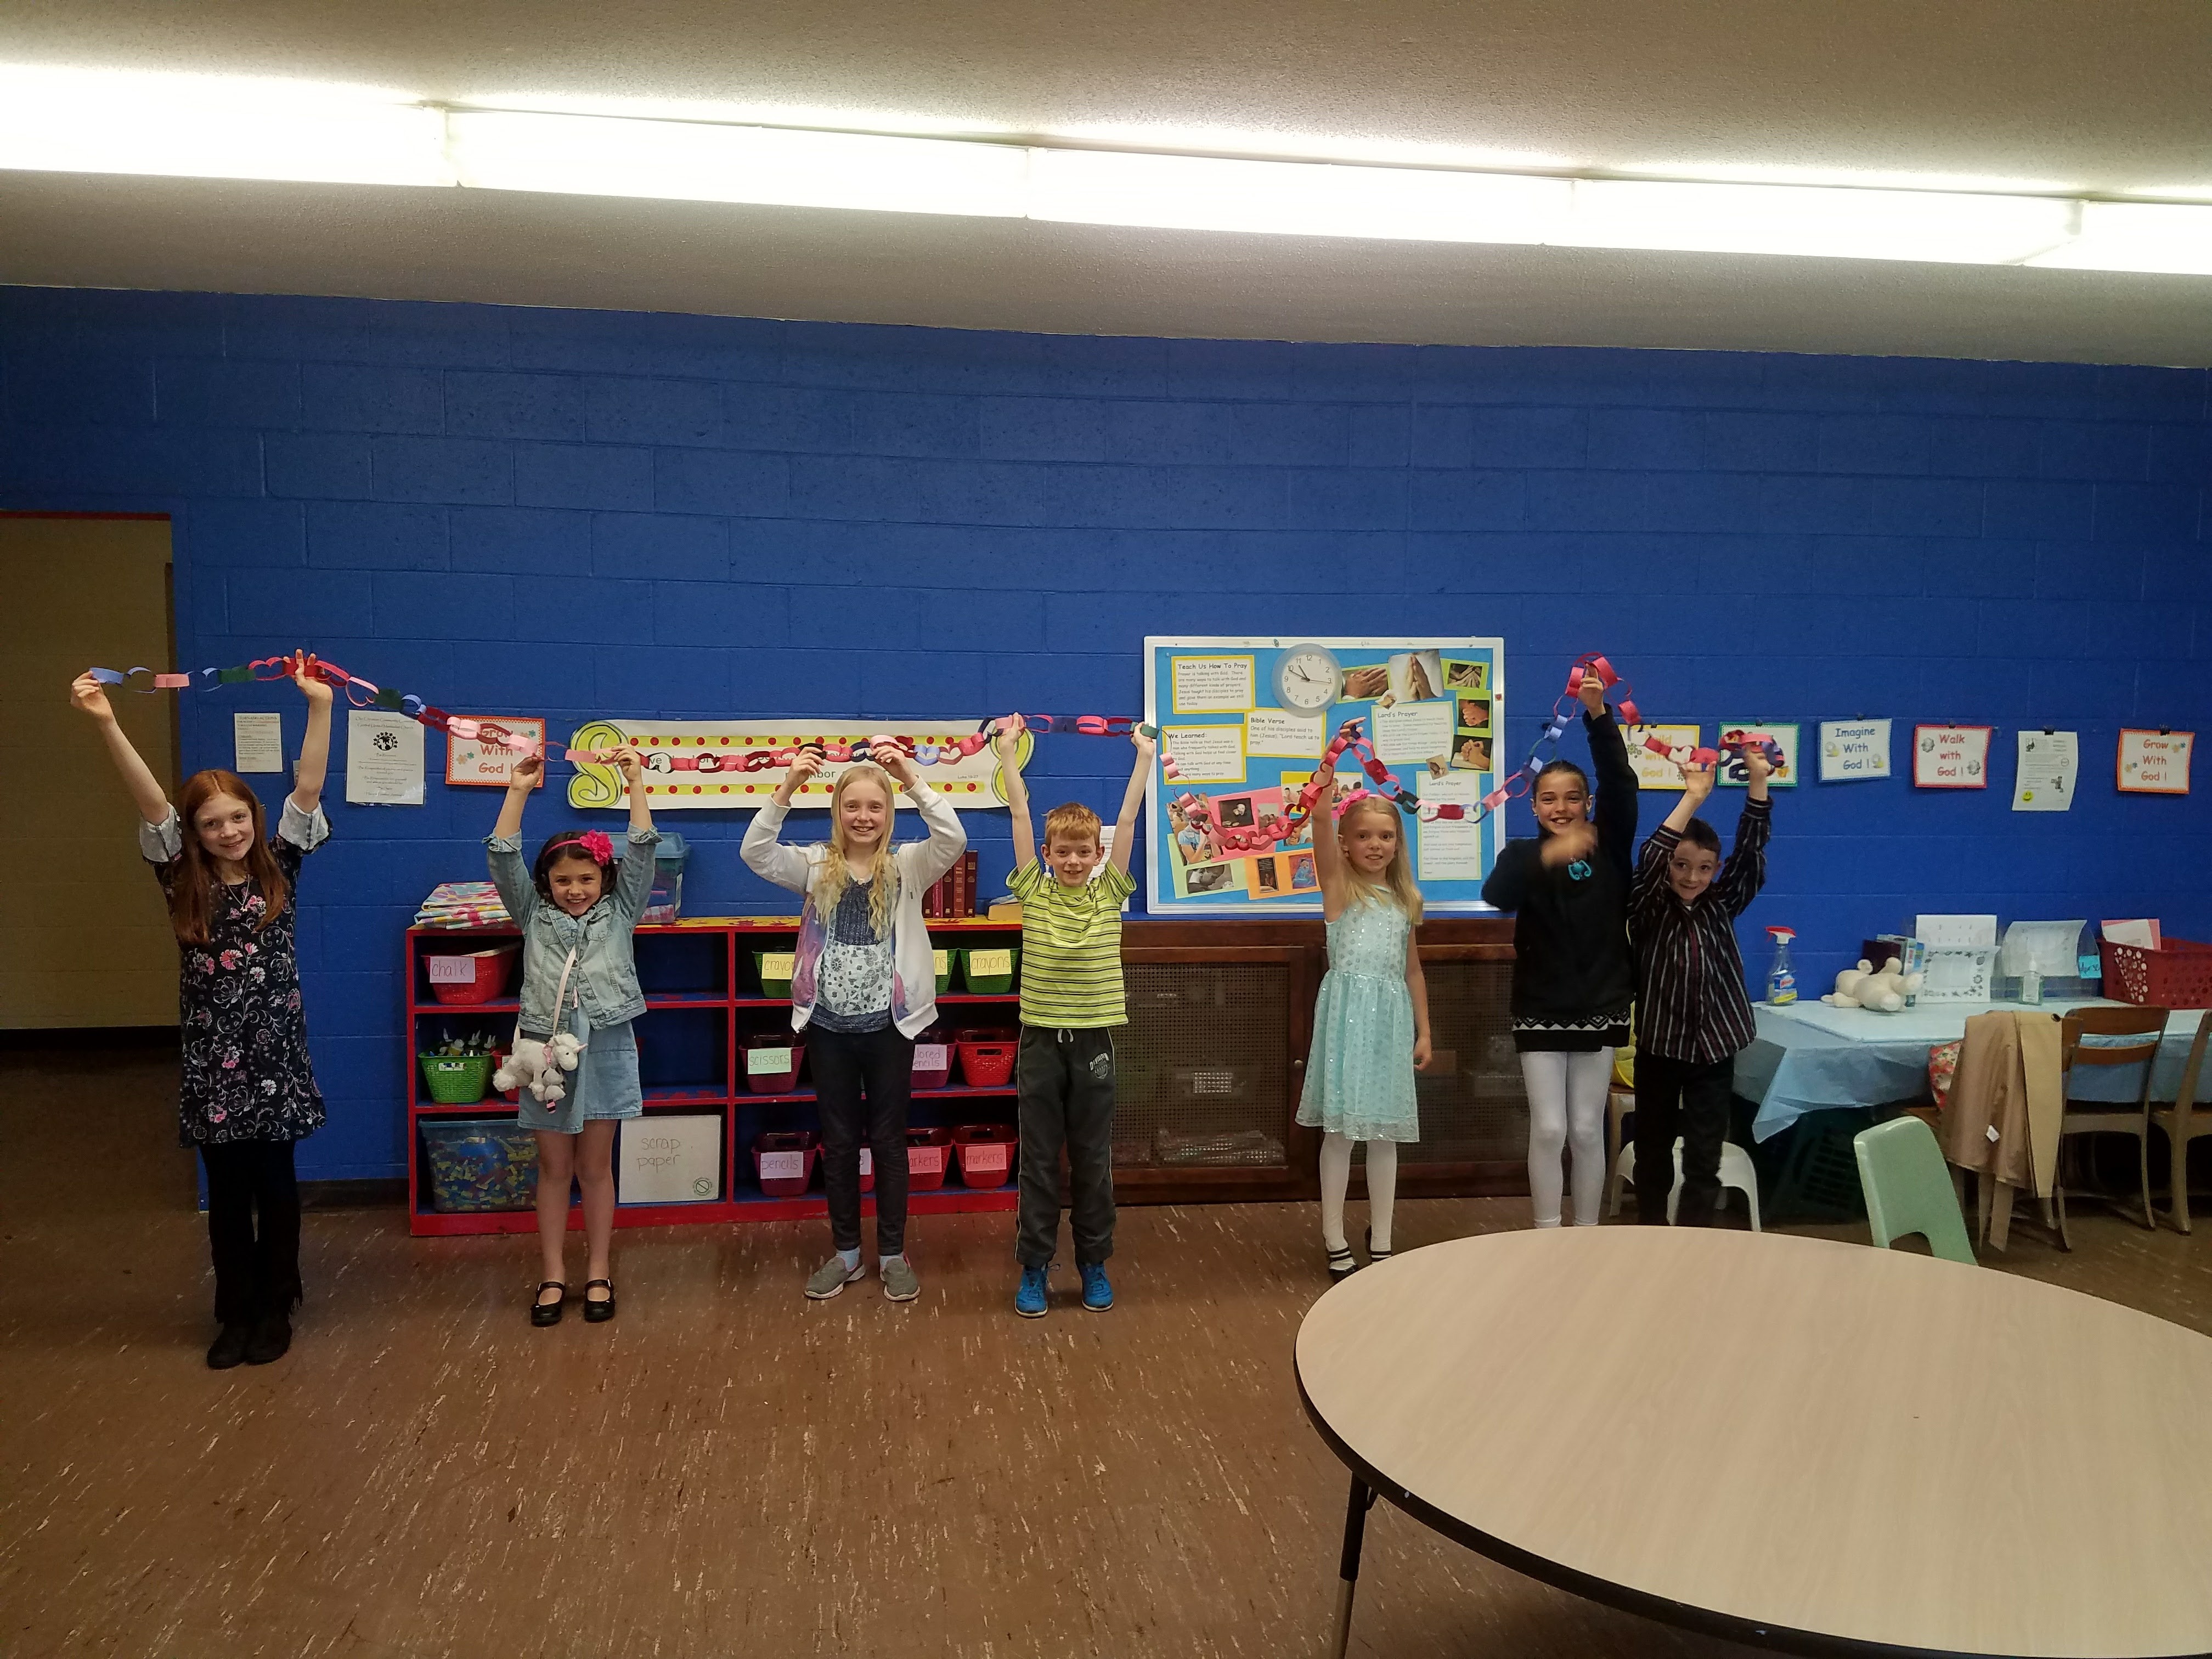 Sunday school at Waterford Central United Methodist Church